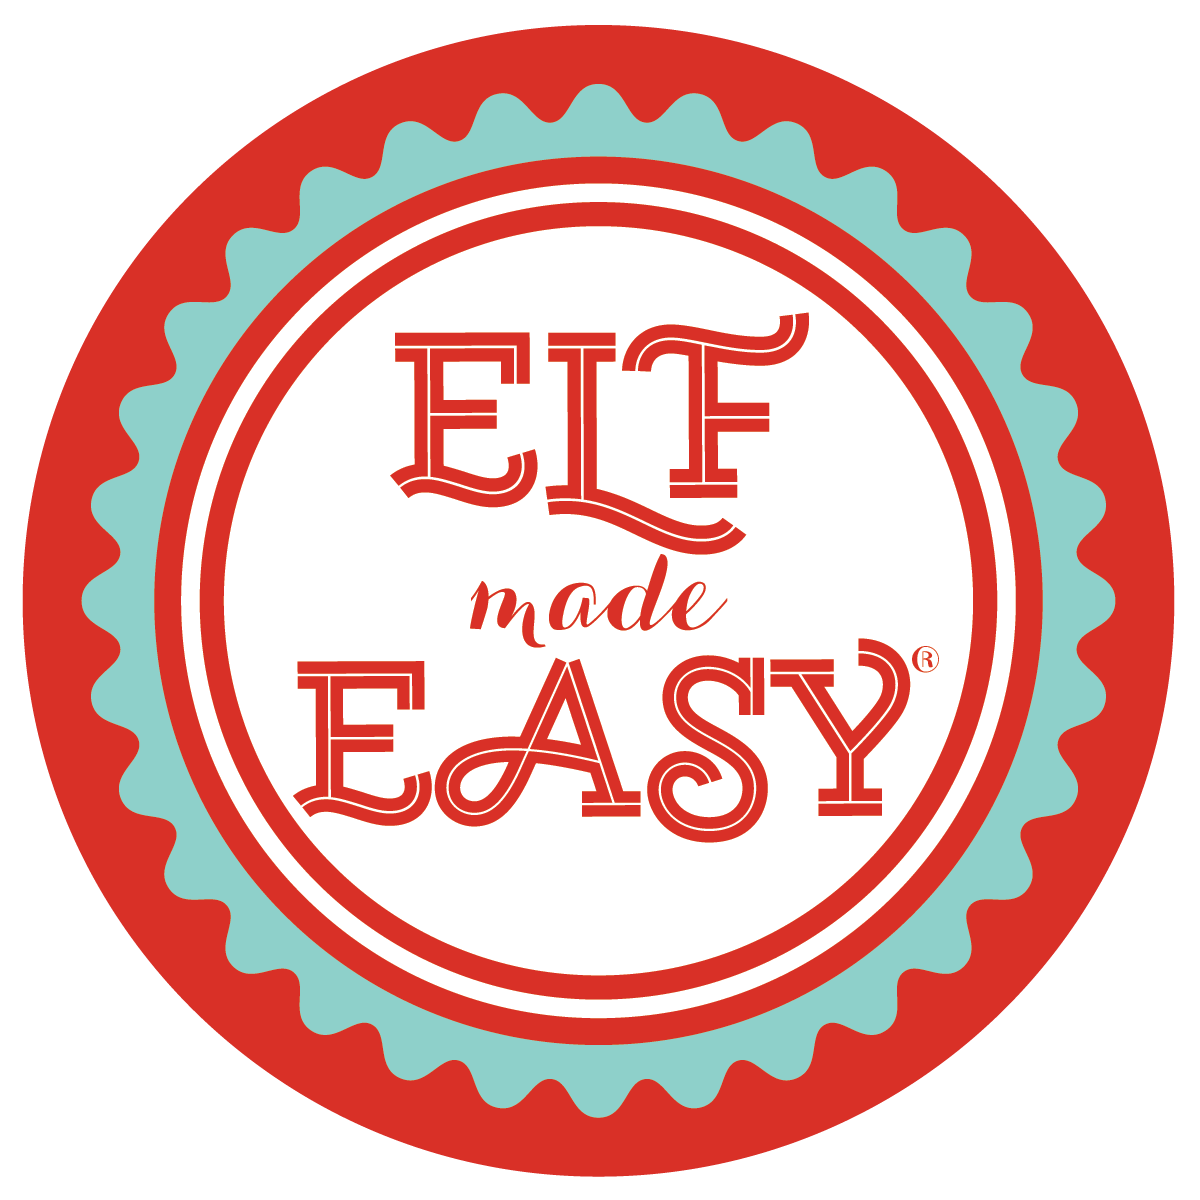 Elf Made Easy